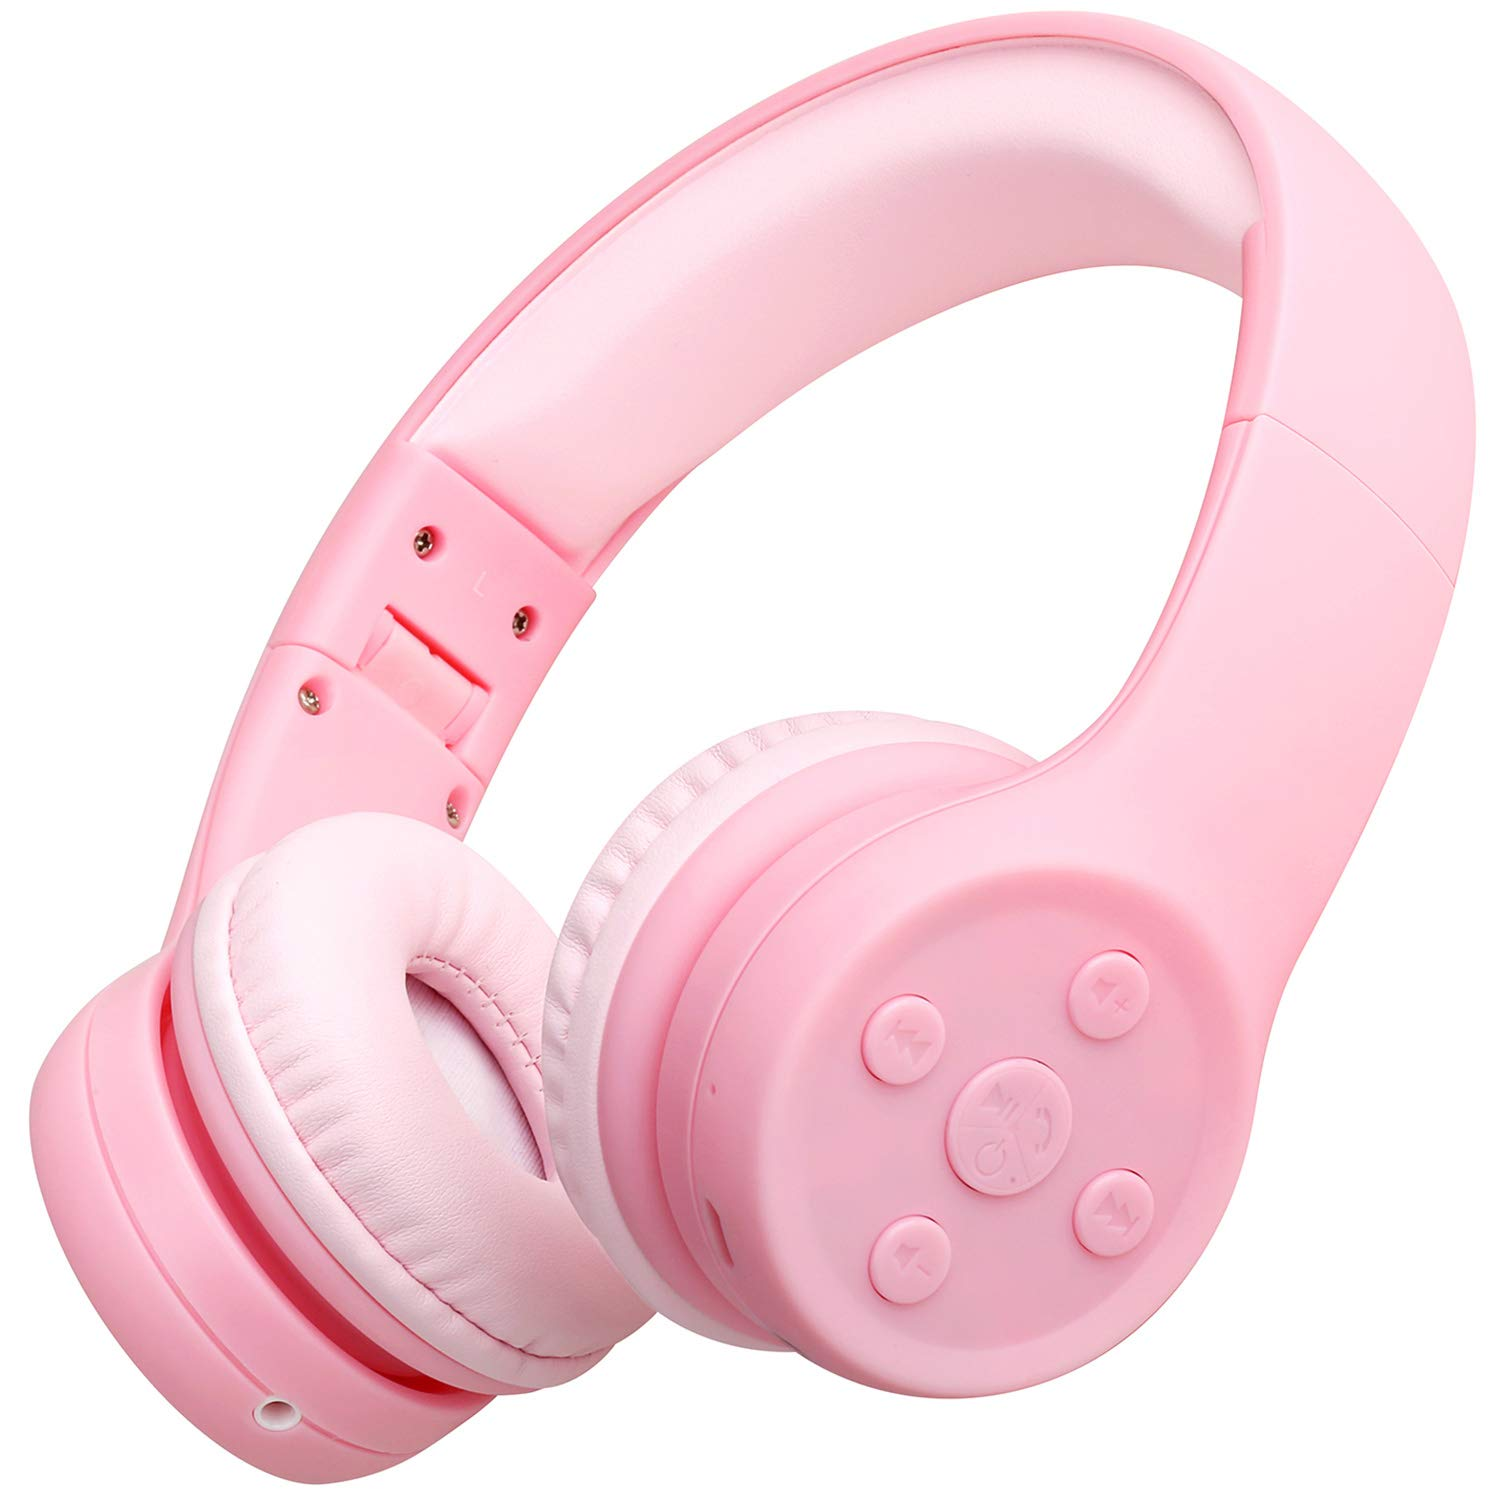 Amazon Com Picun Kids Bluetooth Headphones Safe Volume Limited 85db 15 Hours Play Time Foldable Stereo Sound Headsets With Mic Wireless Headphones For Girls Children Computer Cell Phones Tablet School Game Pink Electronics